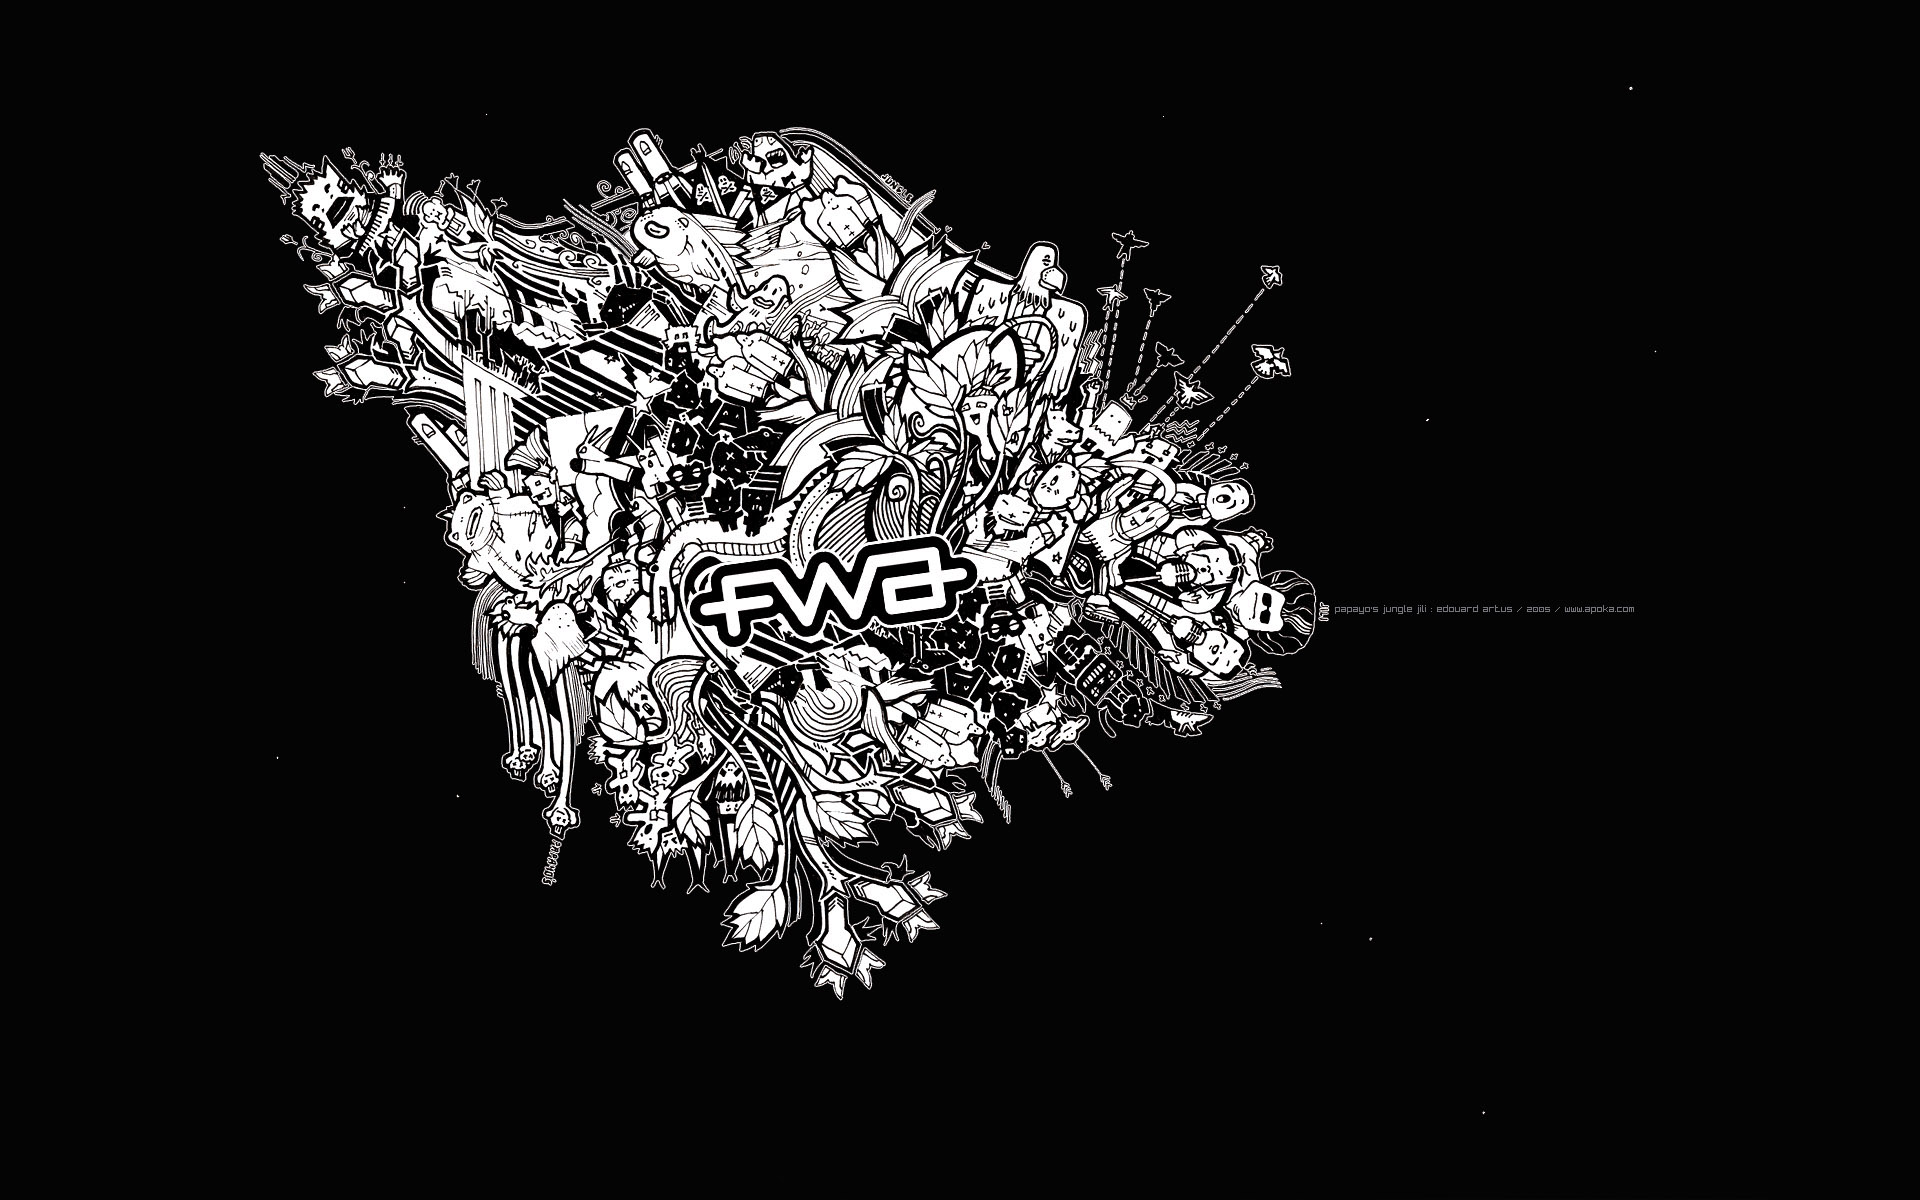 FWA wallpaper widescreen 23594